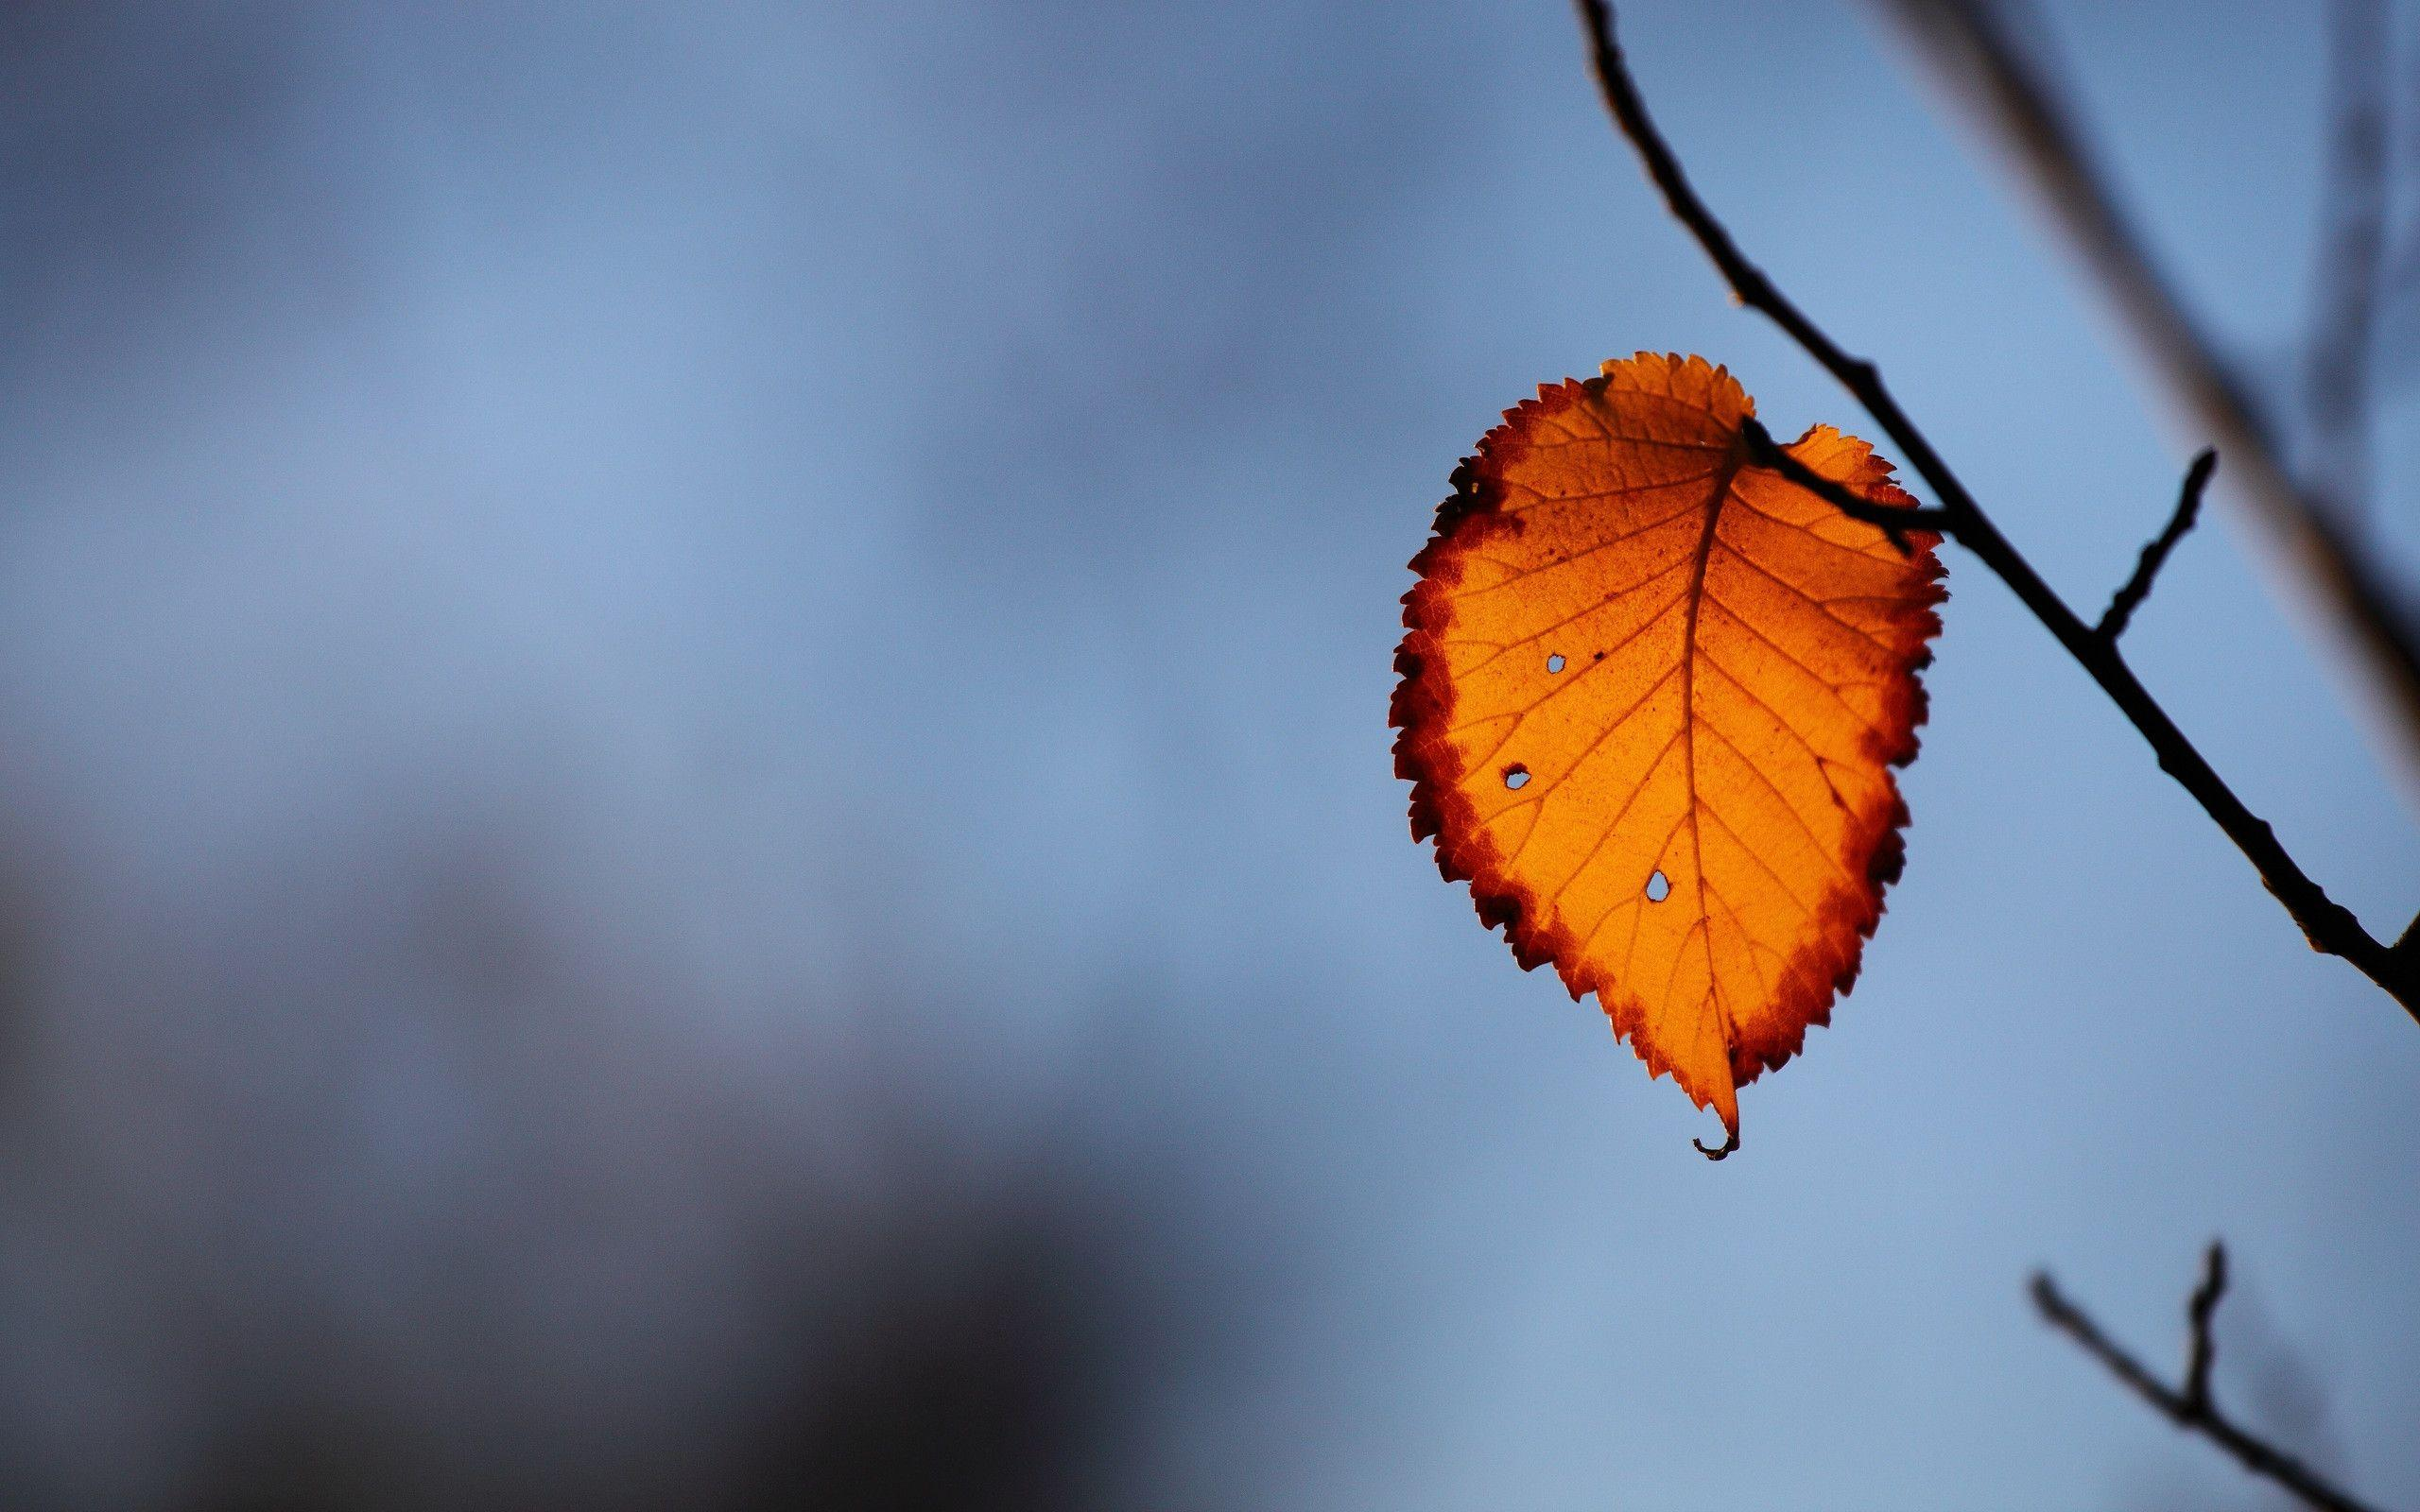 Autumn Leaf Wallpapers - Wallpaper Cave